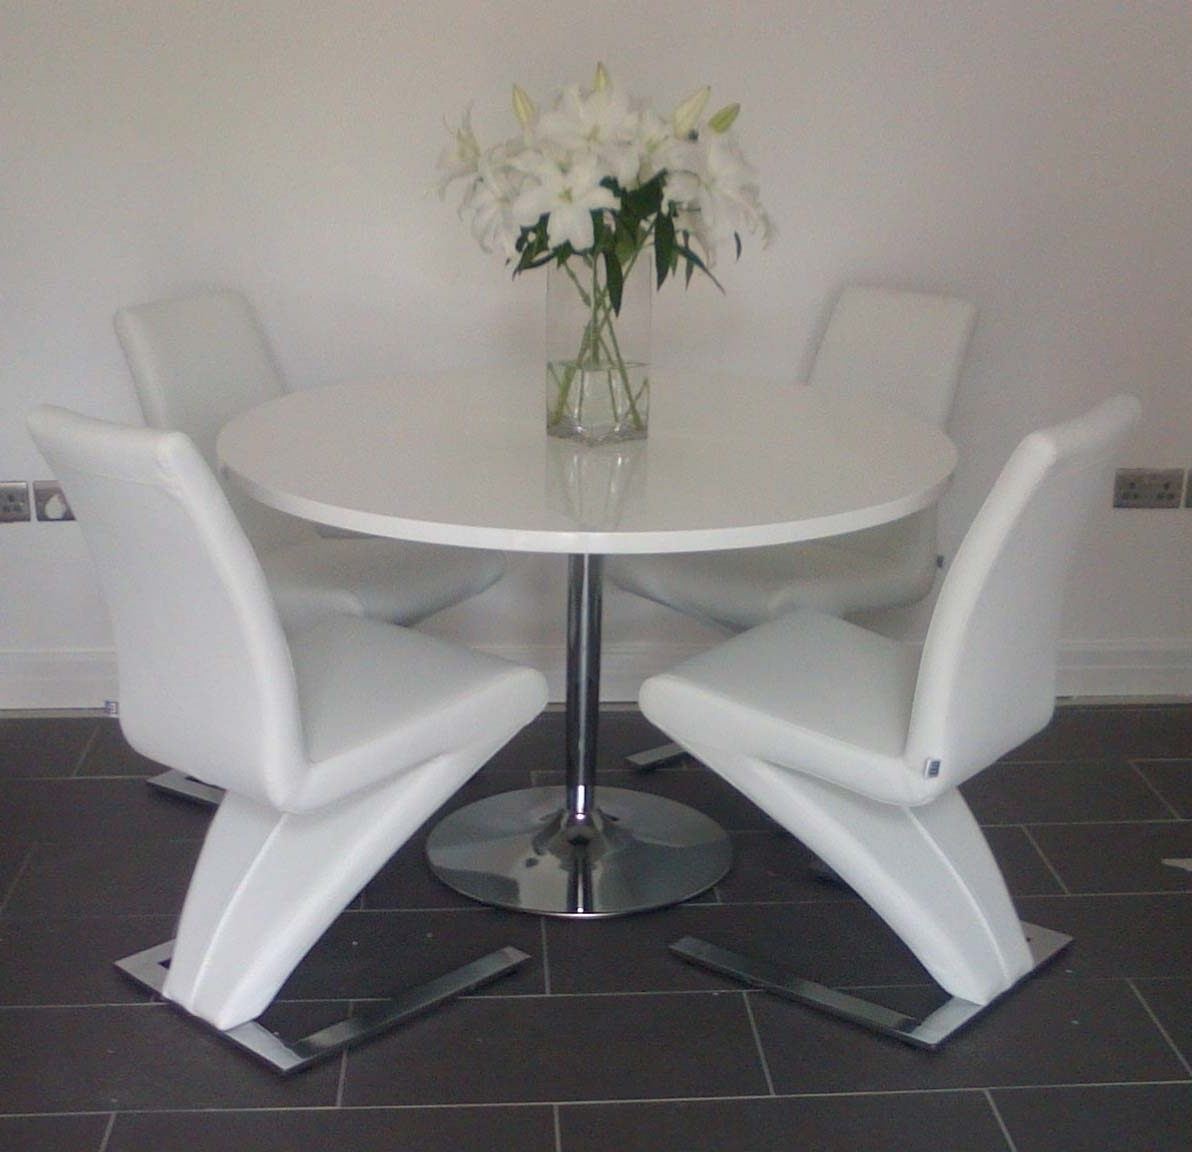 High Gloss Round Dining Tables Intended For Recent Becky Round White High Gloss Dining Table 120Cm Discontinued For (Gallery 6 of 25)